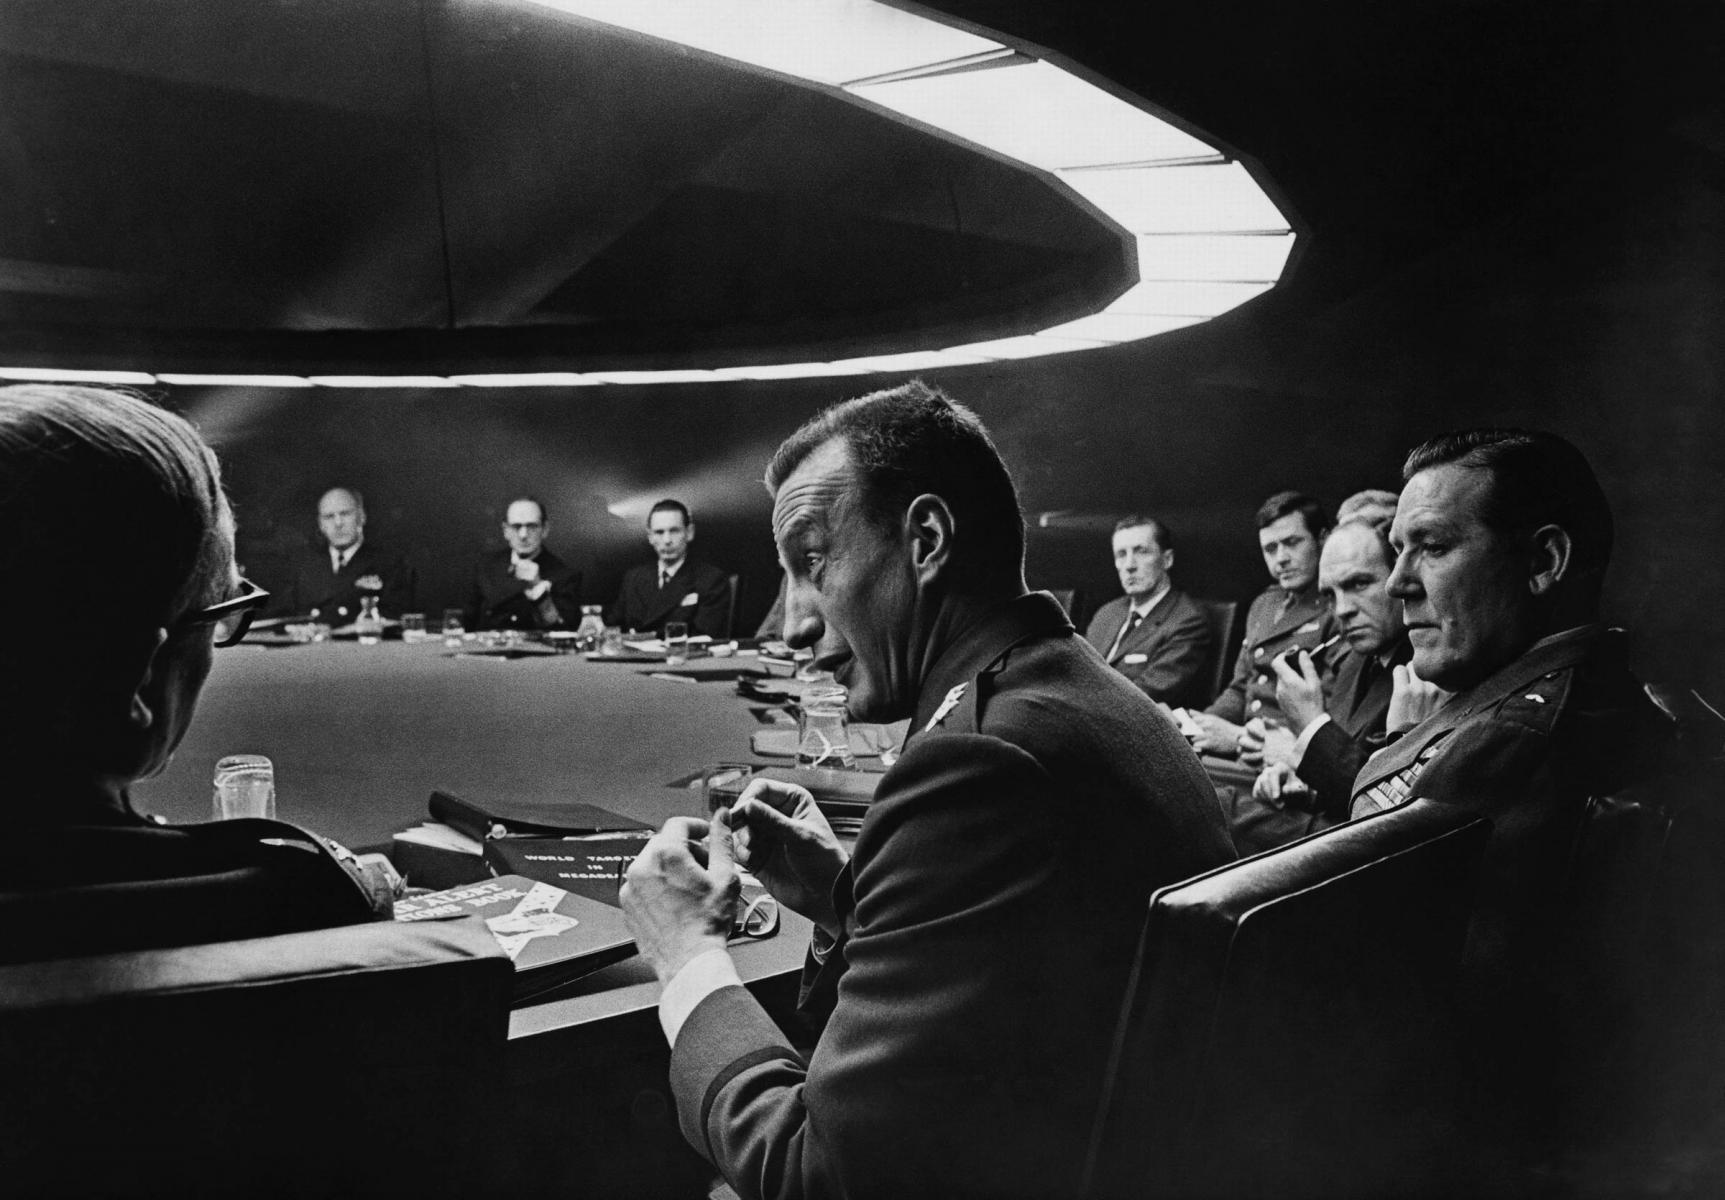 Image gallery for Dr. Strangelove, or How I Learned to Stop Worrying